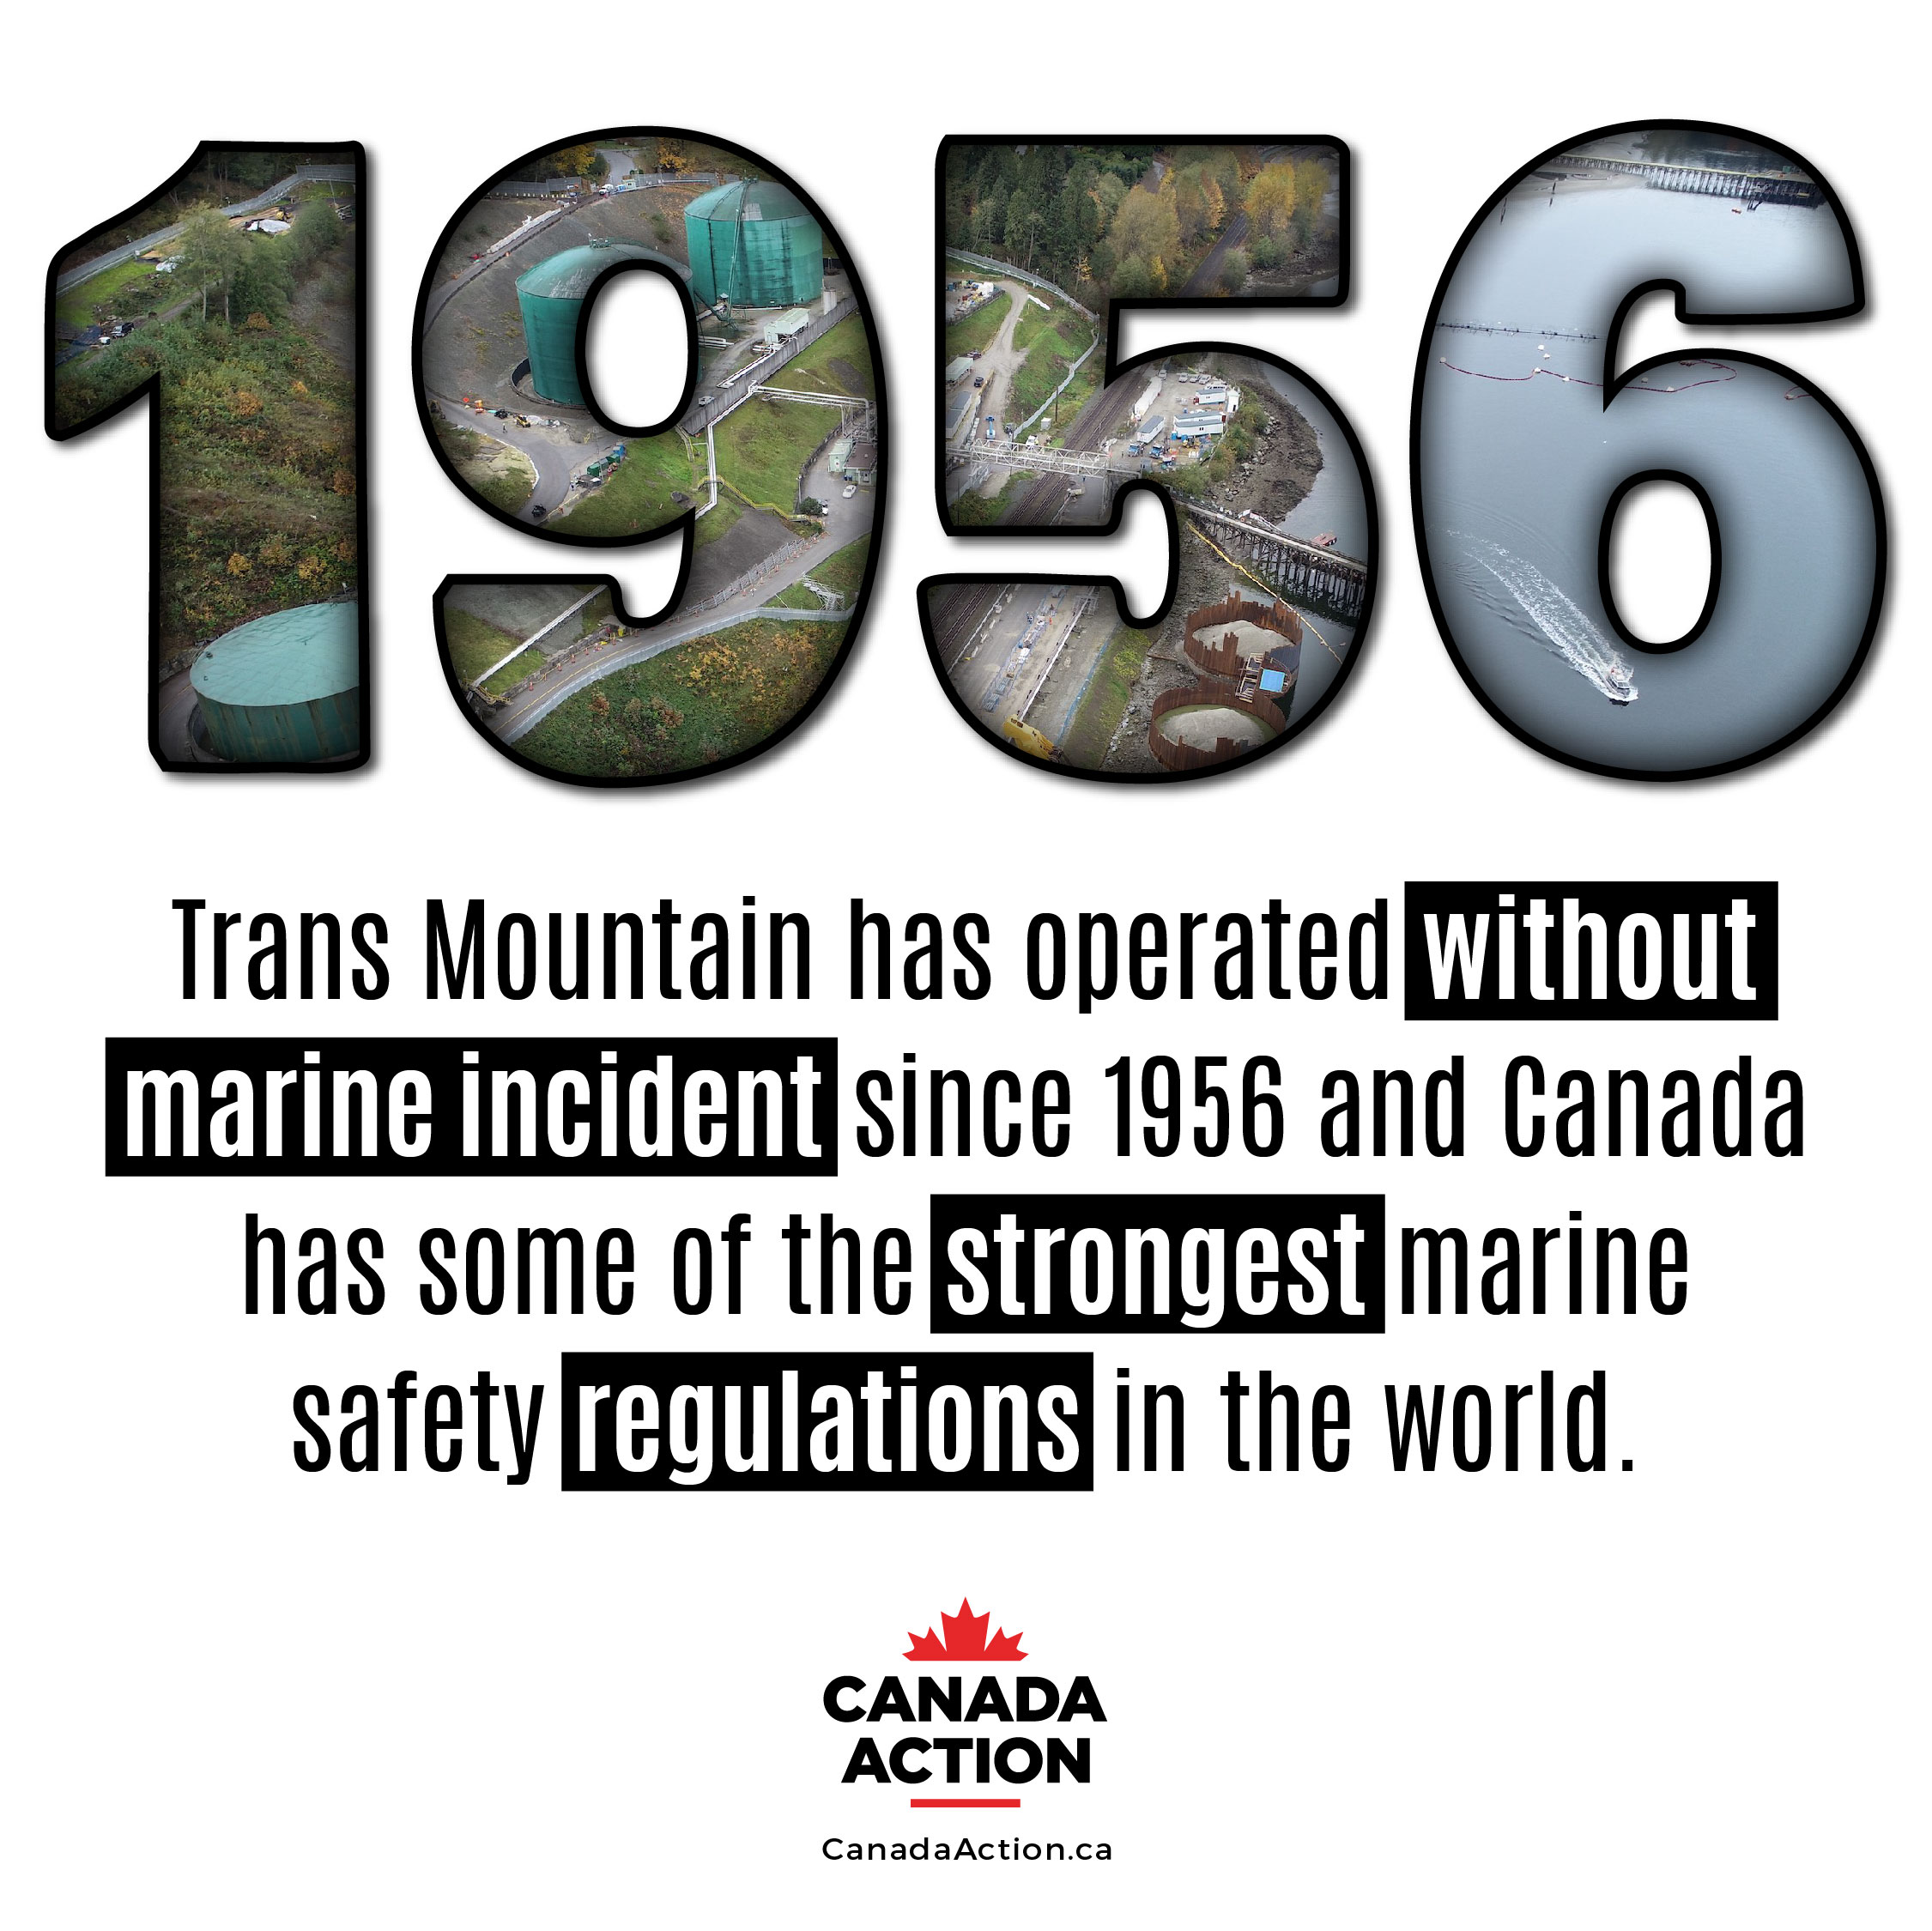 Trans mountain pipeline Canada has operated without marine incident since 1956